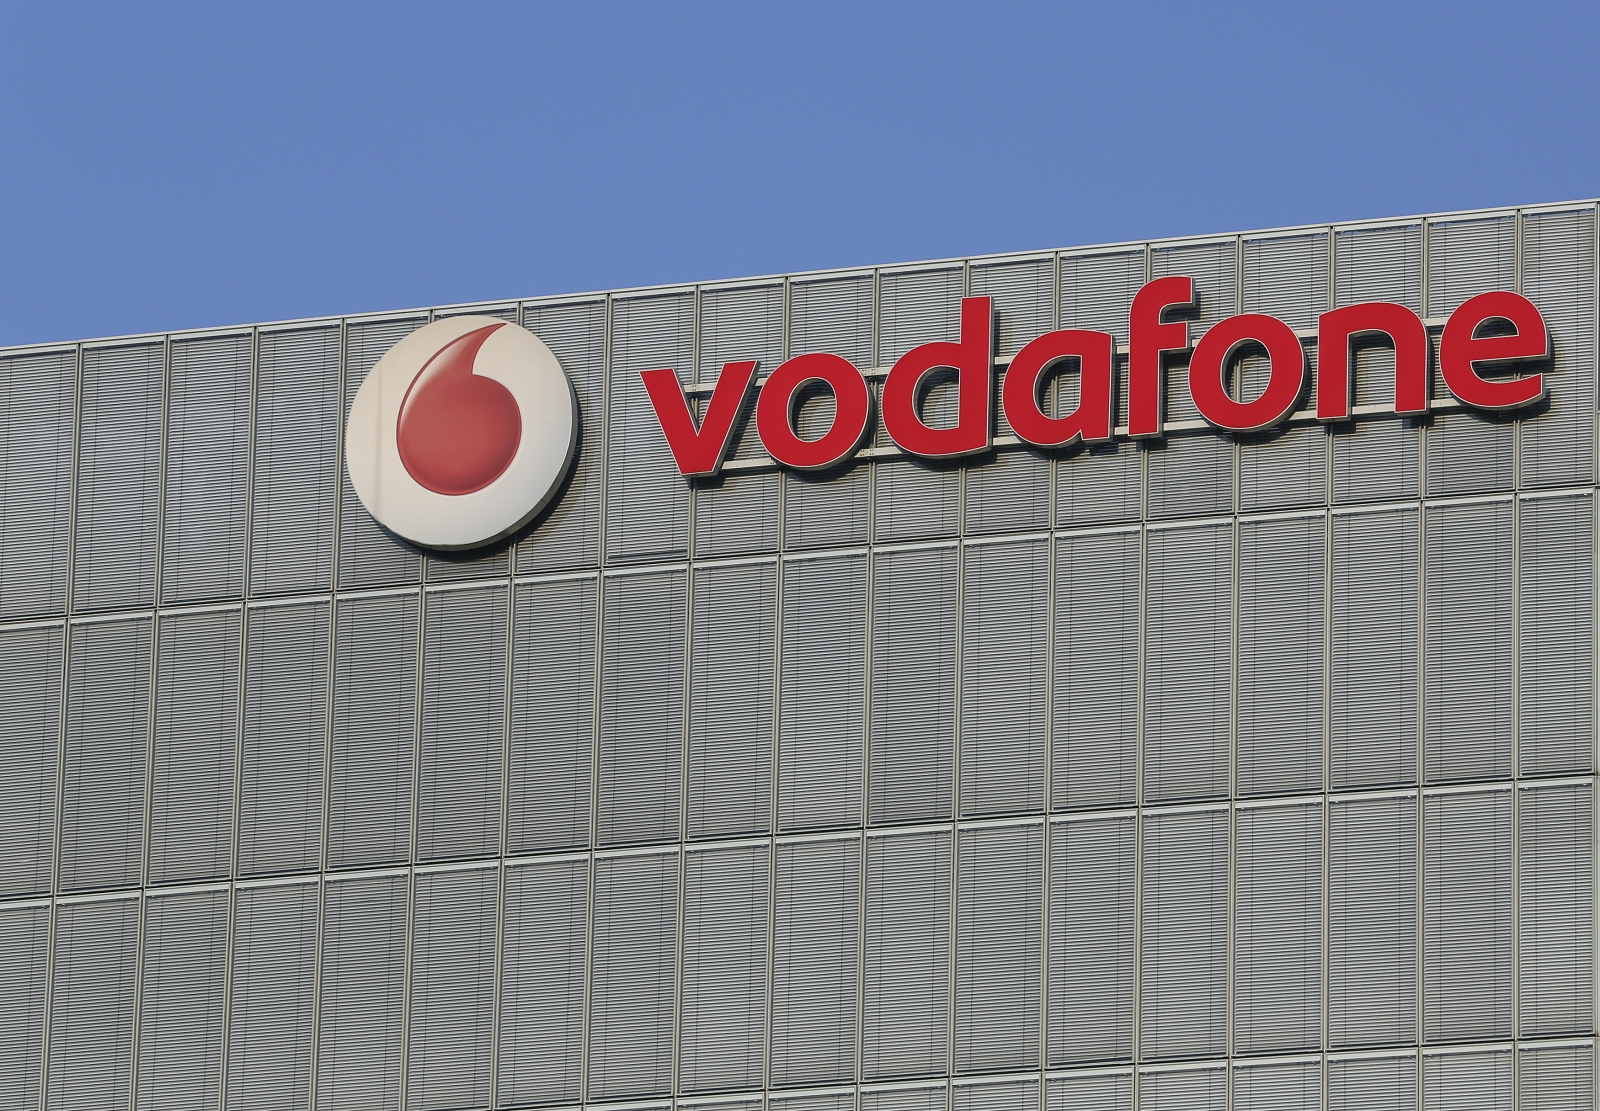 Vodafone to face a multimillion pound fine by Ofcom – report